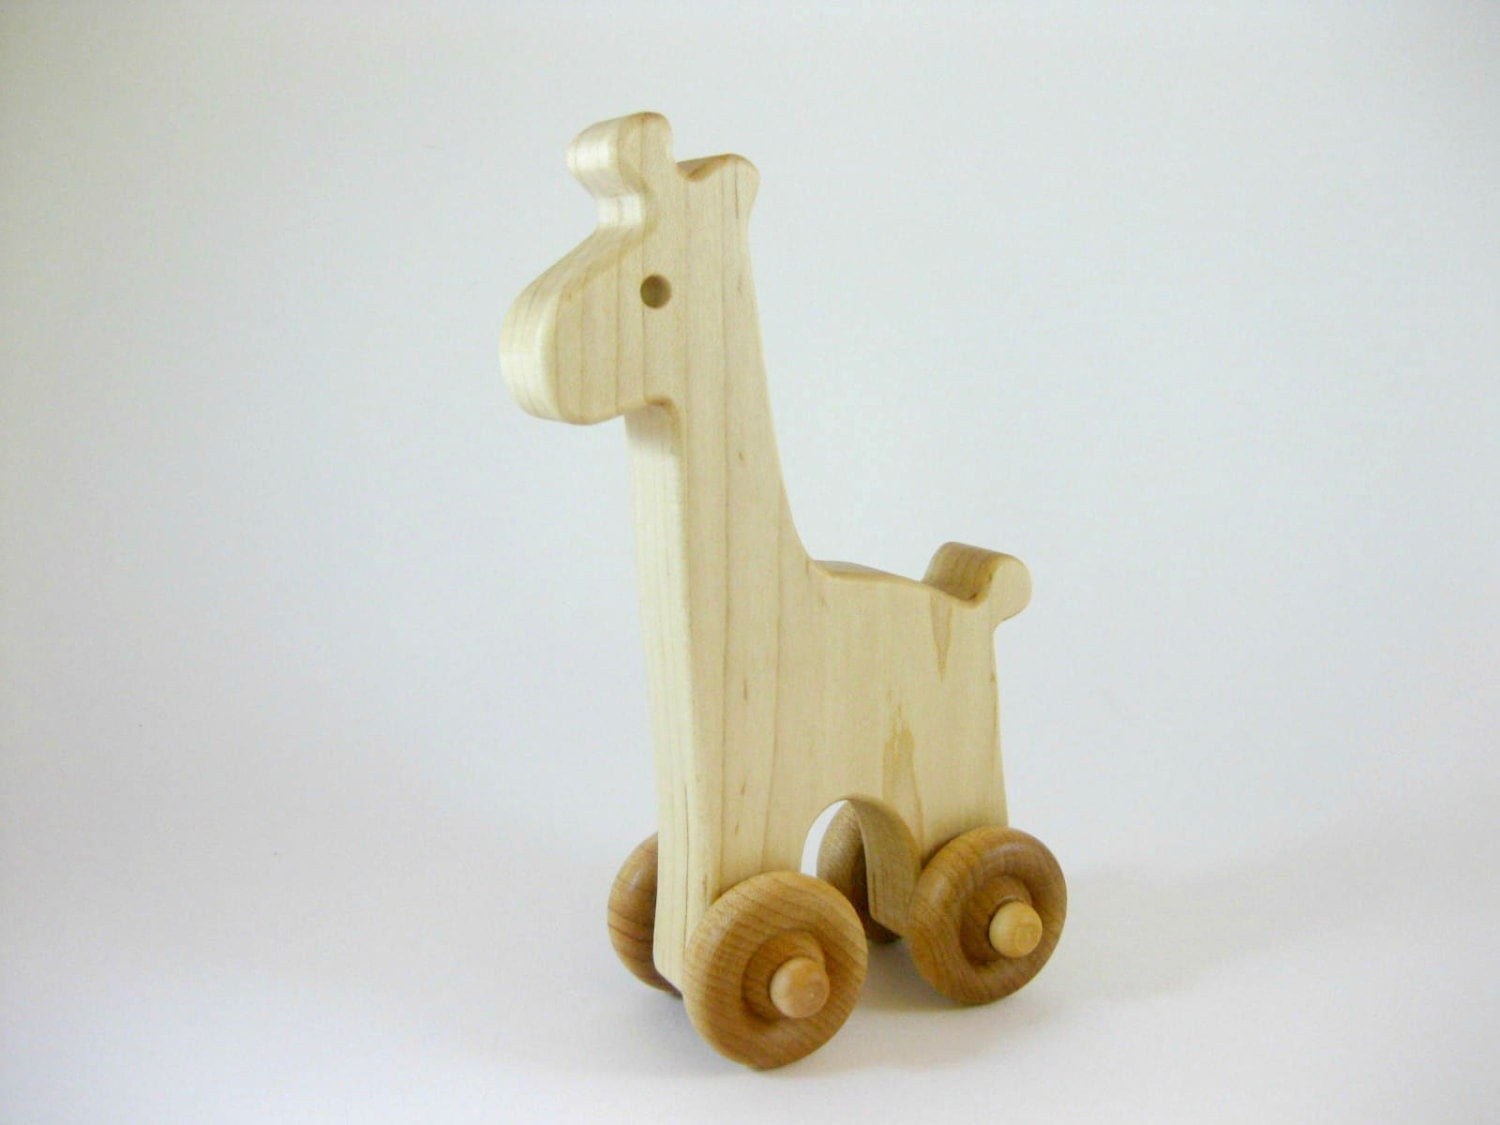 Wood Toy Giraffe Push Toy natural wooden toy